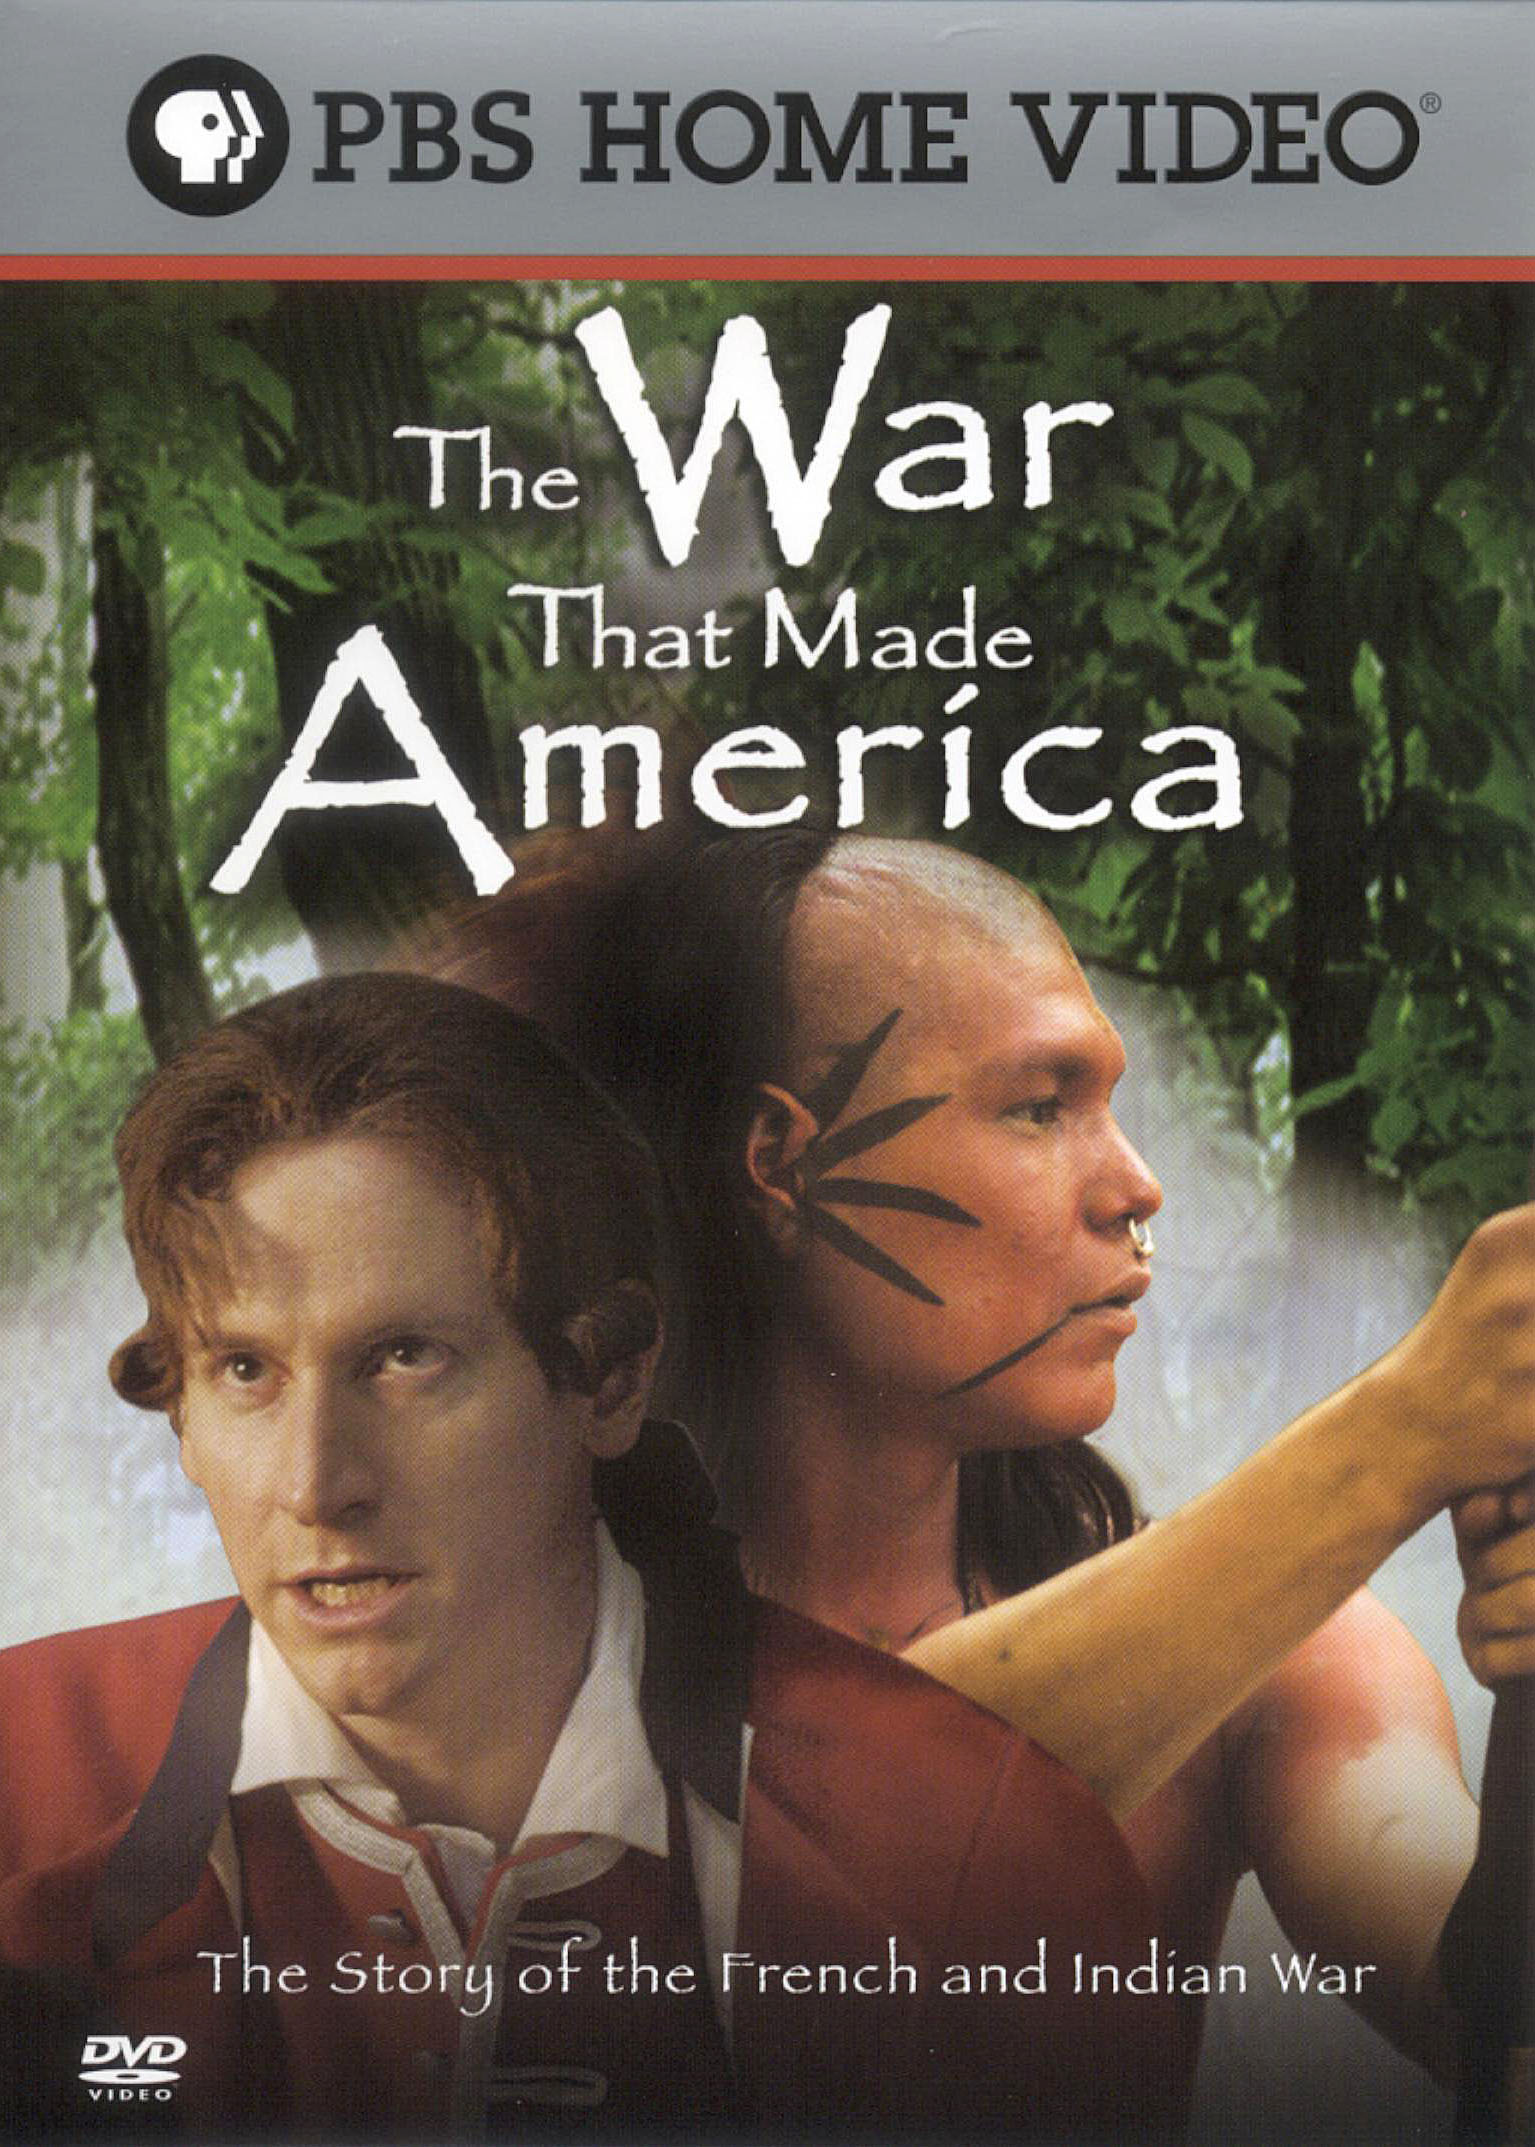 The War That Made America [TV Miniseries]